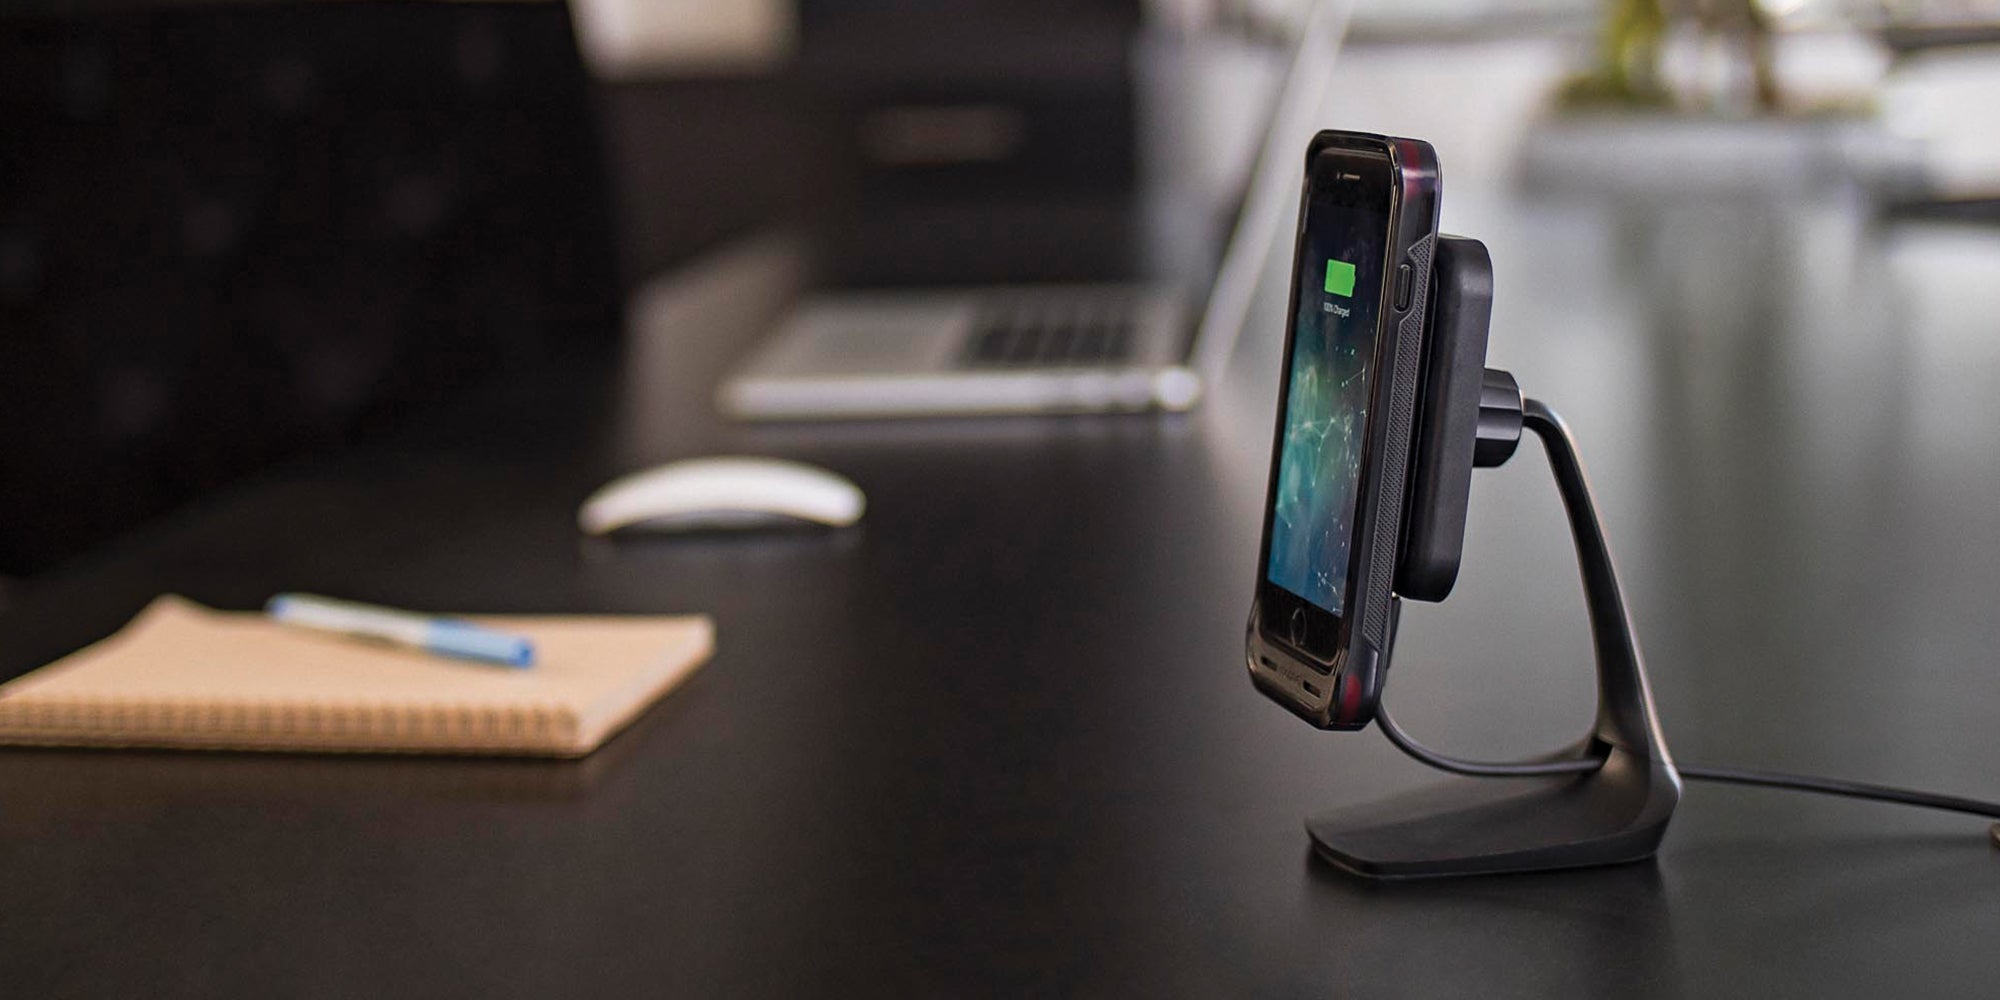 phone with a juice pack flex on it on a mophie desk stand